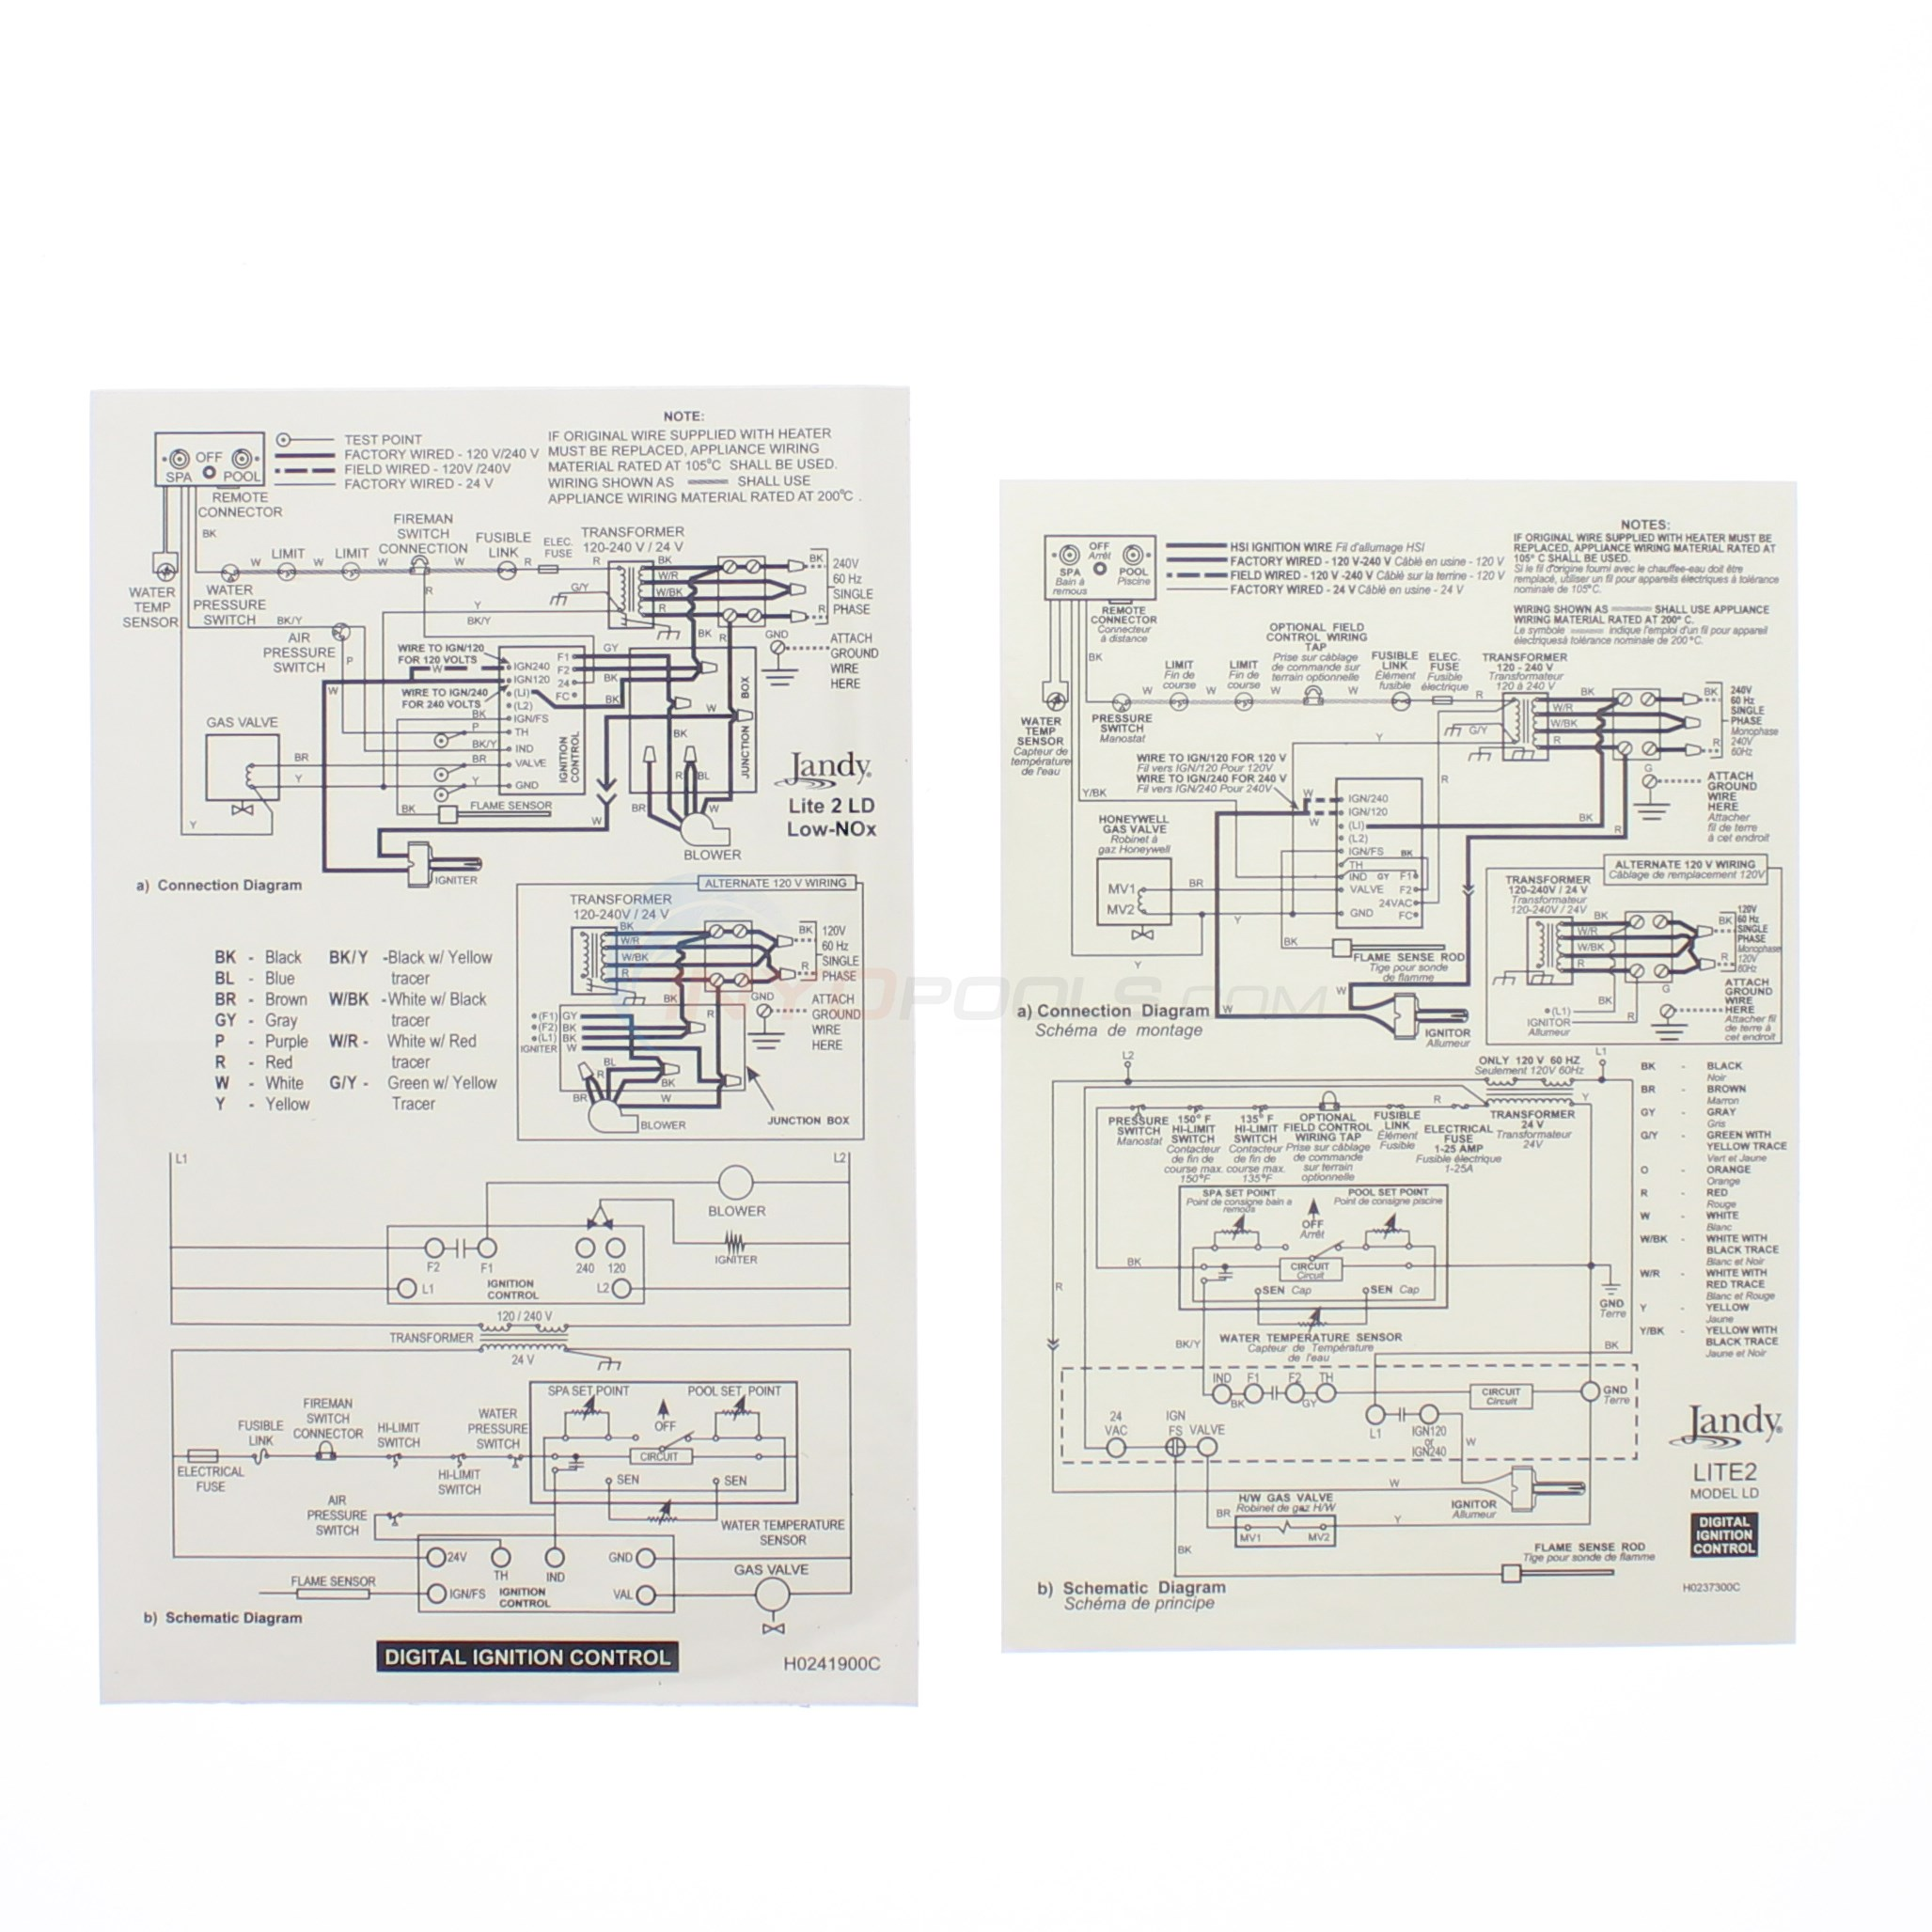 zodiac 6200 0301?format=jpg&scale=both&anchor=middlecenter&autorotate=true&mode=pad&width=650&height=650 zodiac ignition control assembly (r0408100) inyopools com fenwal ignition module wiring diagram at virtualis.co